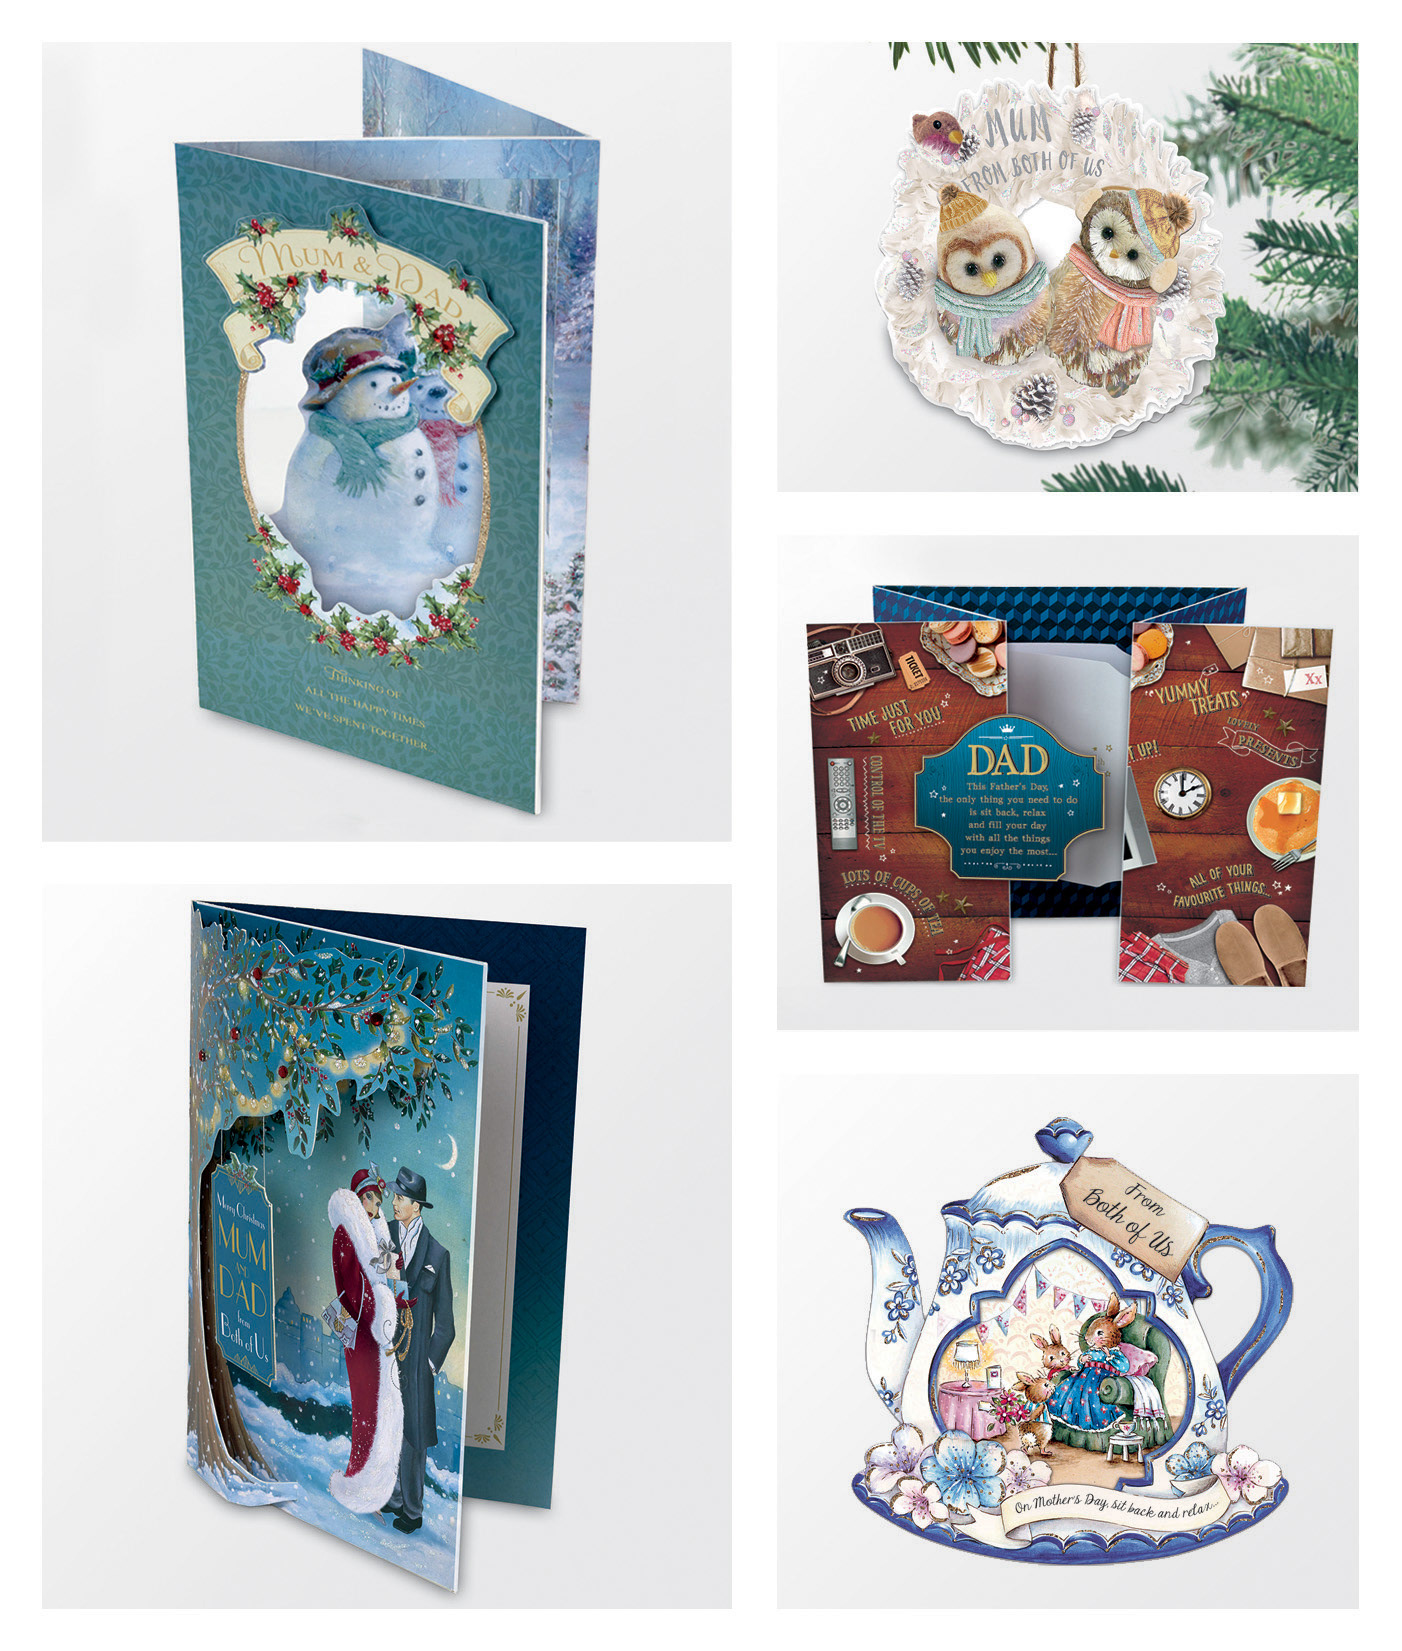 Melissa price artworking cards with die cuts lazor cuts decorative finishes such as foil and glitter uk greetings ltd own the copyright to all the below card designs m4hsunfo Image collections